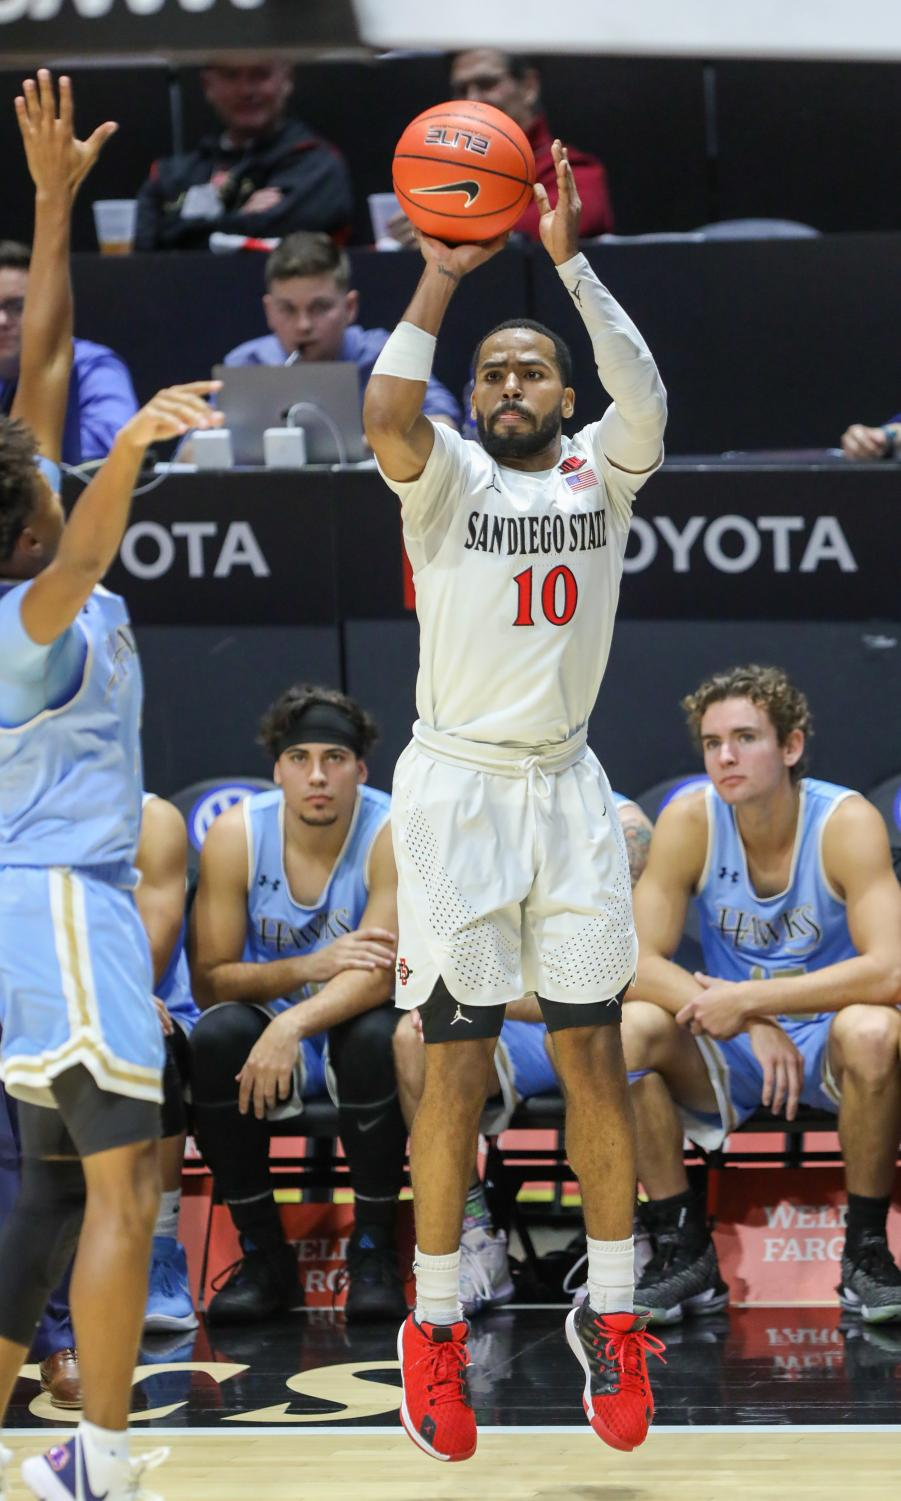 Senior guard KJ Feagin shoots a 3-point jumper in the Aztecs' 92-48 win over San Diego Christian on Dec. 18 at Viejas Arena.